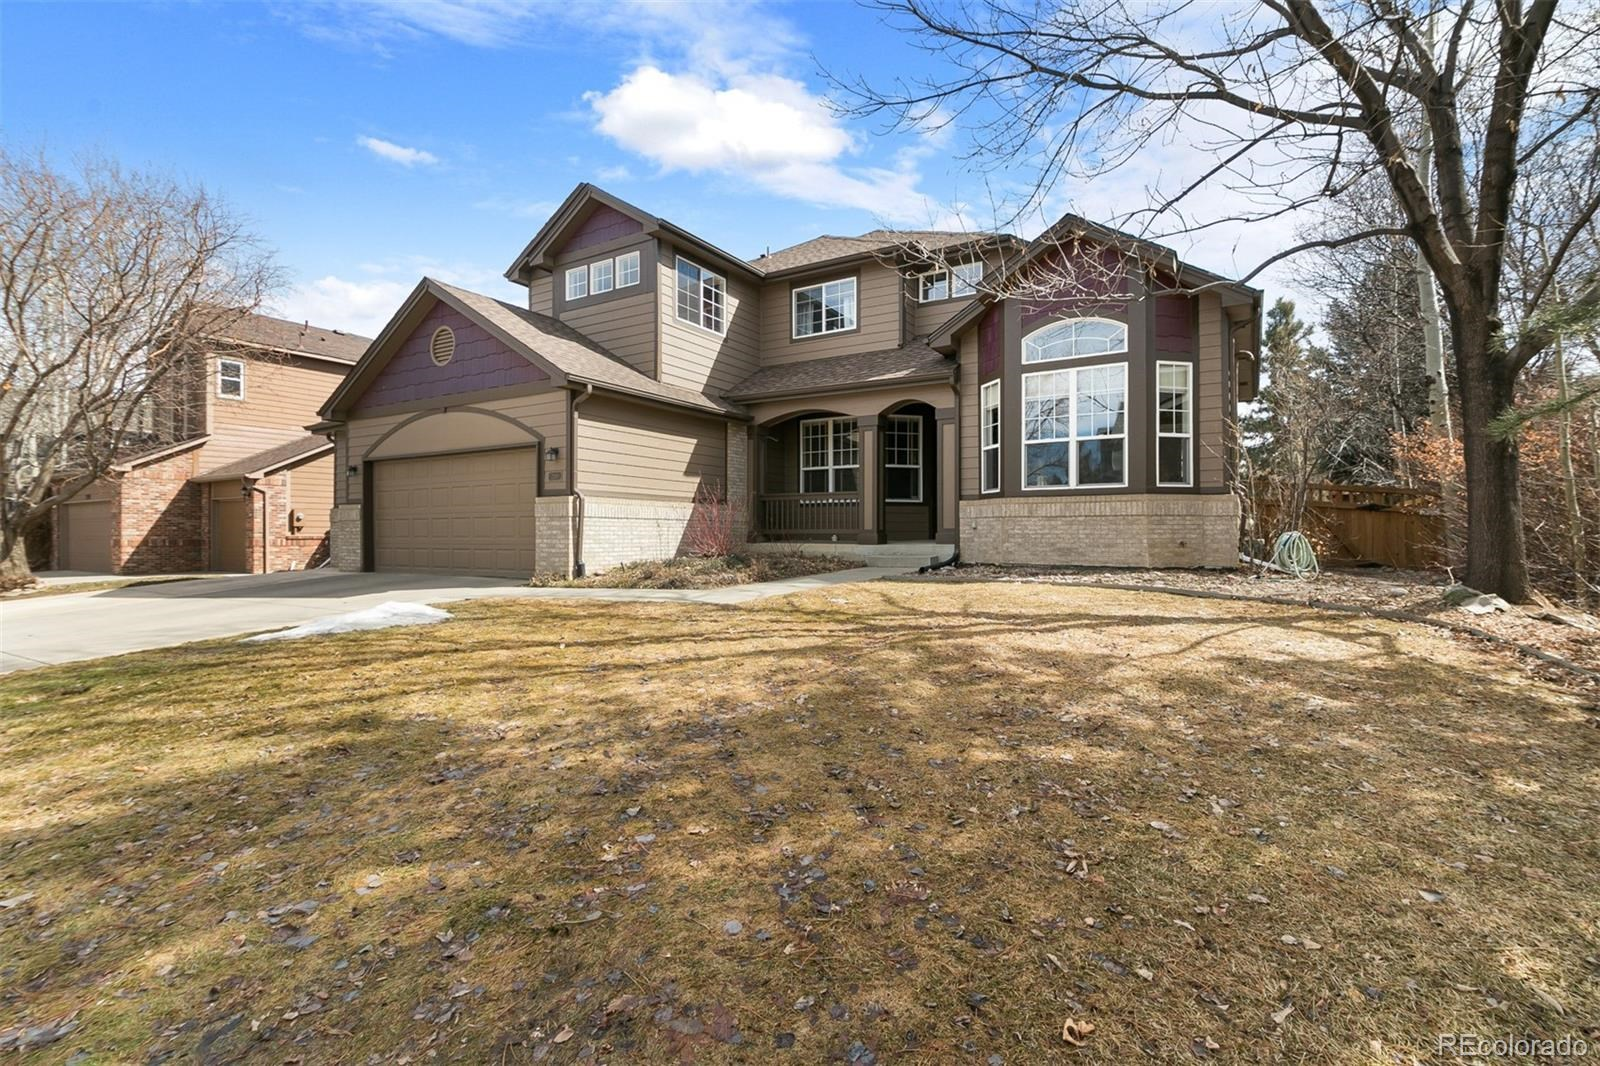 MLS# 3491087 - 2 - 2300 Creekside Drive, Longmont, CO 80504